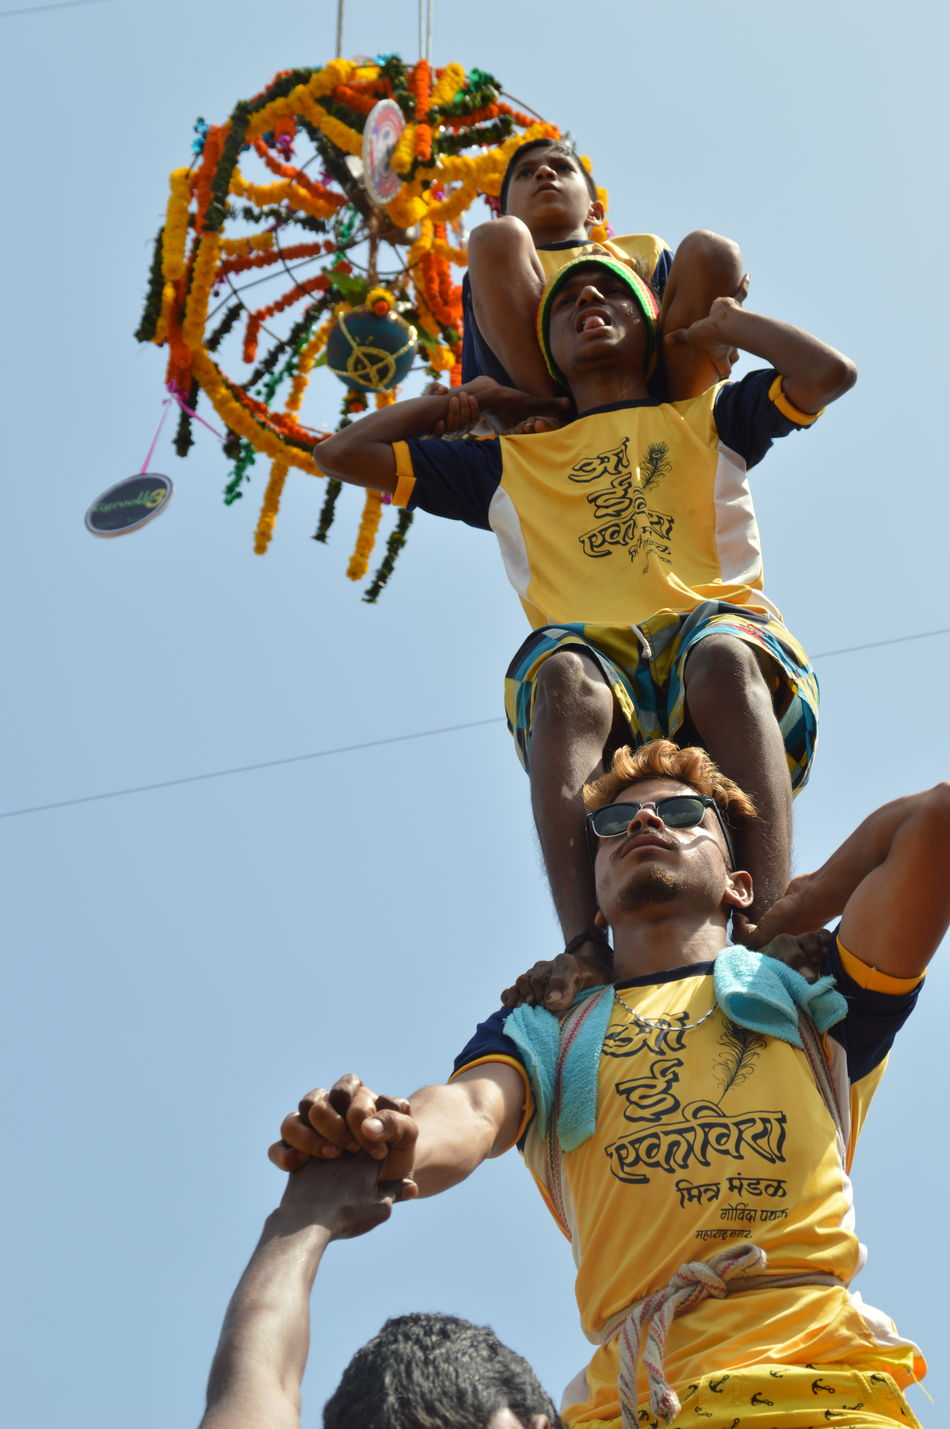 human pyramid Clear Sky Colors Dahi Handi Day Festival Festive Season Human Figures Drawn Human Pyramid  Low Angle View Memories Outdoors Sky Tourism Yellow Young Adult